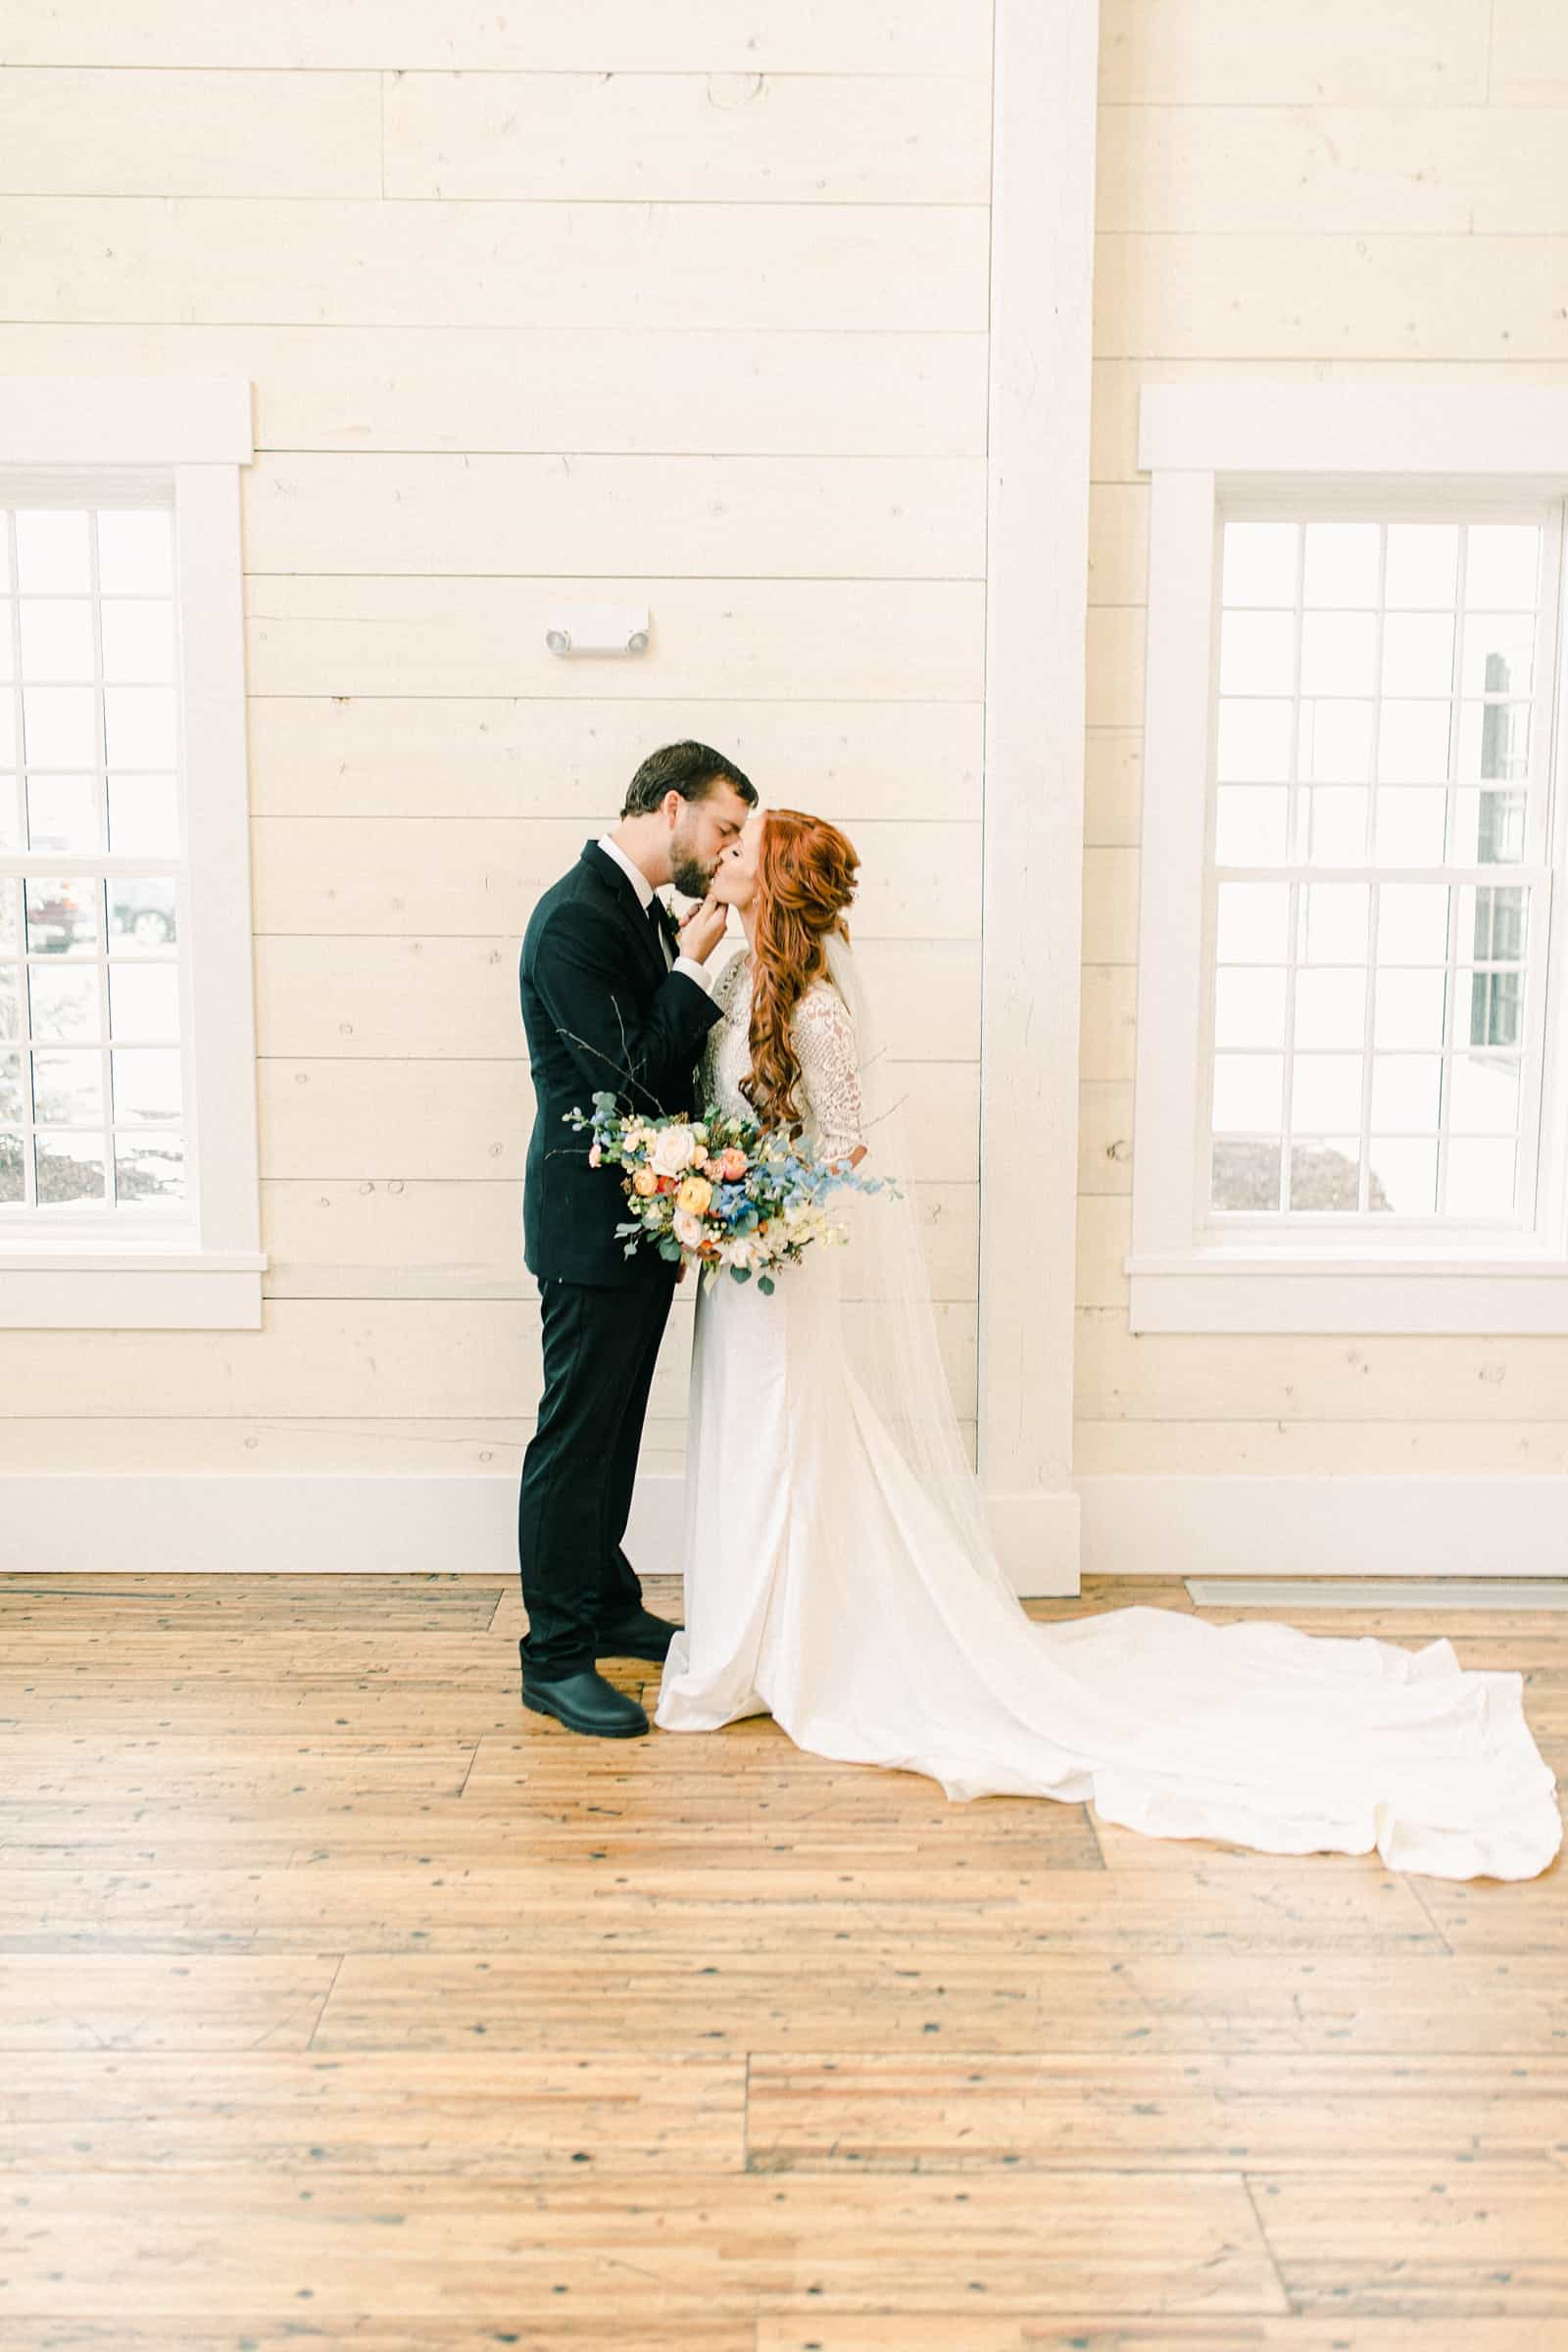 Bride and groom first kiss, white barn wedding venue